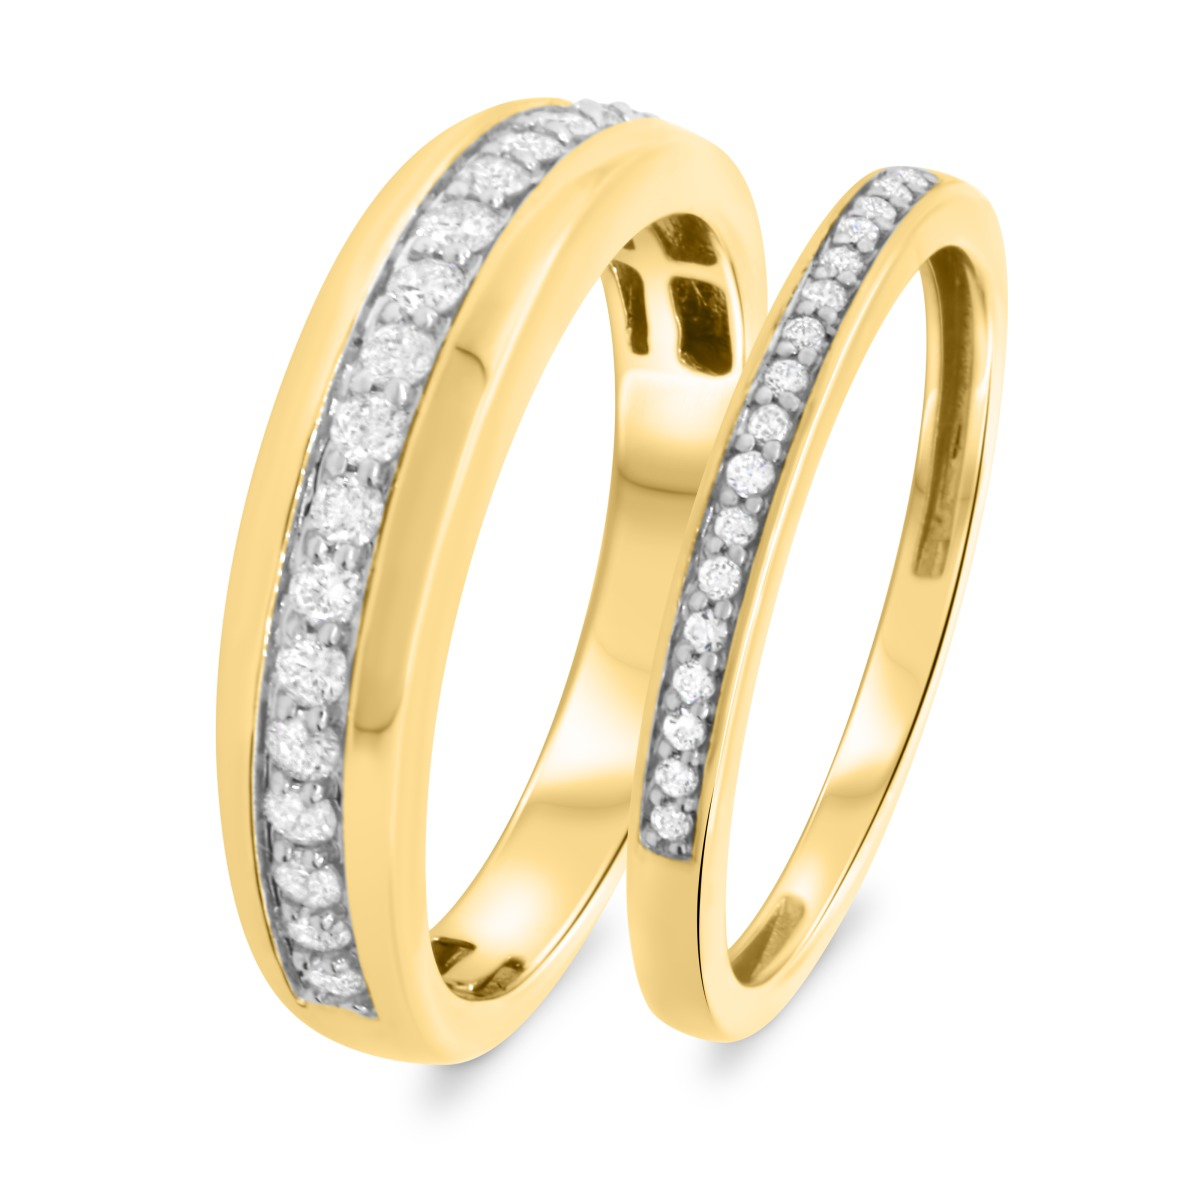 1/2 Carat T.W. Diamond Matching Wedding Band Set 14K Yellow Gold